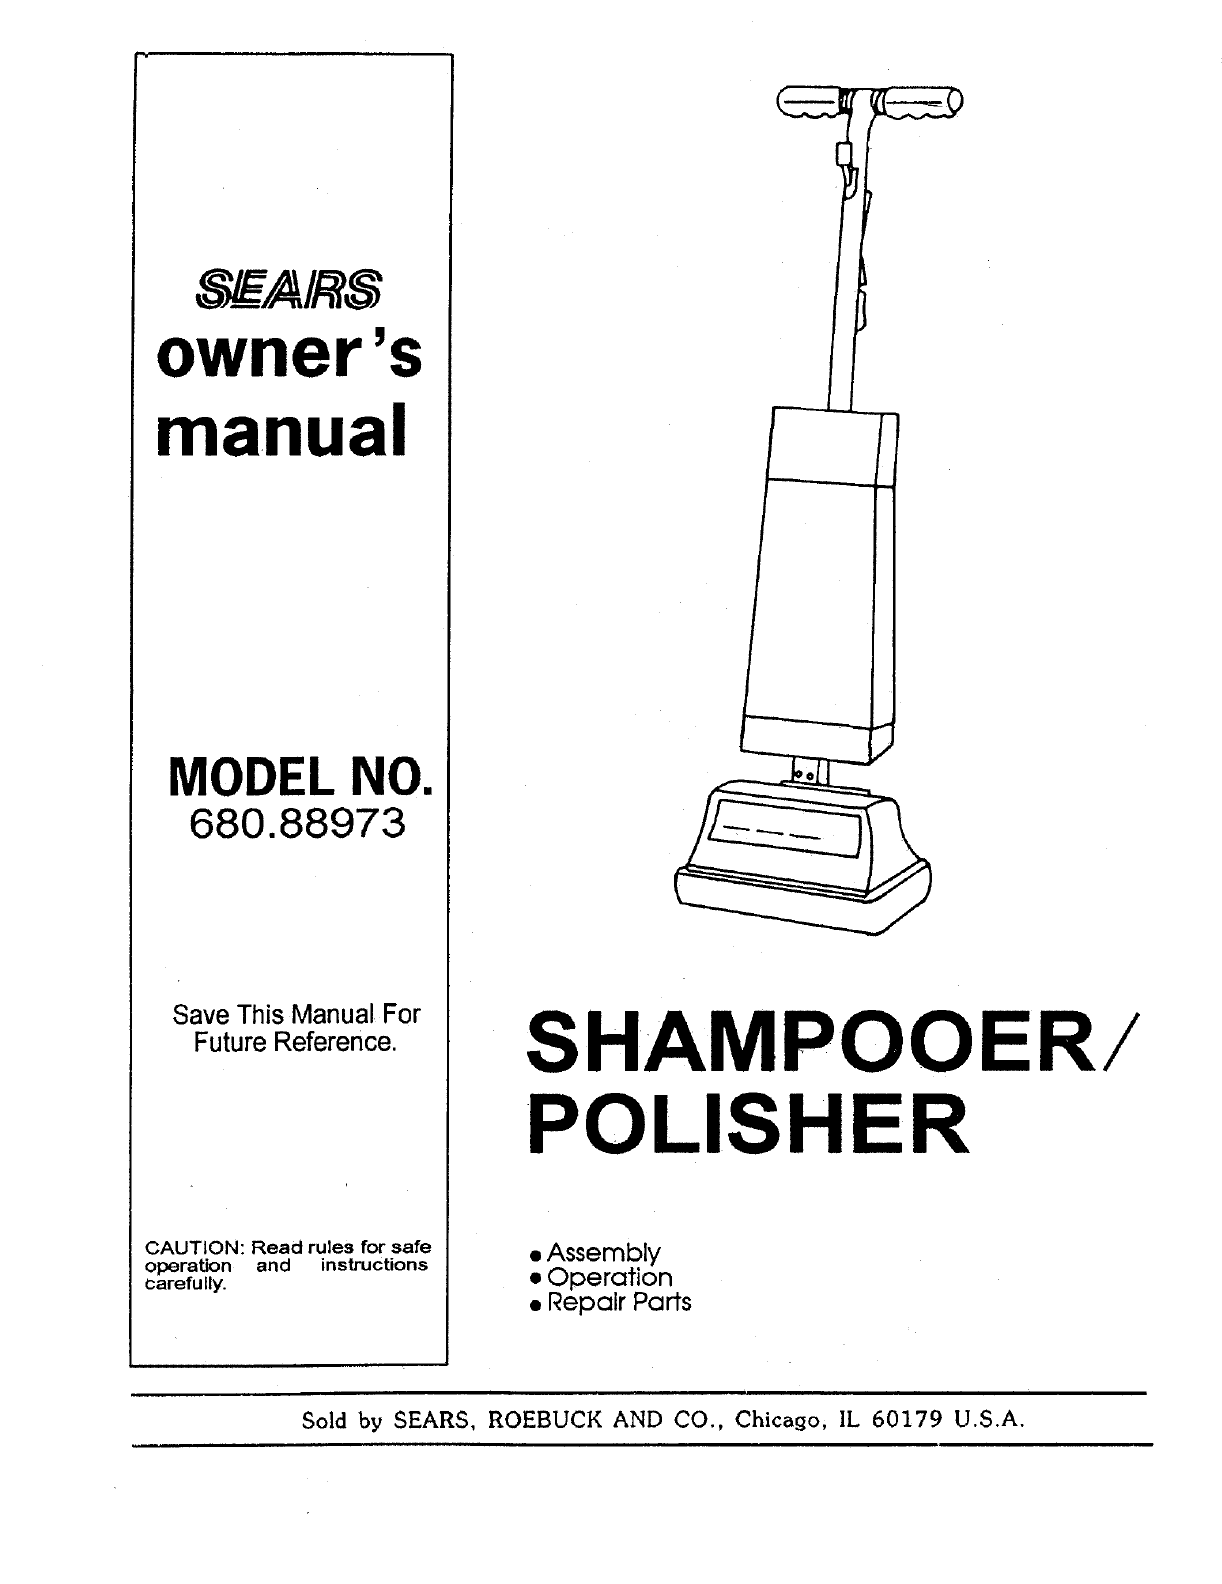 sears carpet cleaner 680 88973 user guide manualsonline com rh homeappliance manualsonline com Kenmore Accela Carpet Cleaner Kenmore Accela Carpet Cleaner